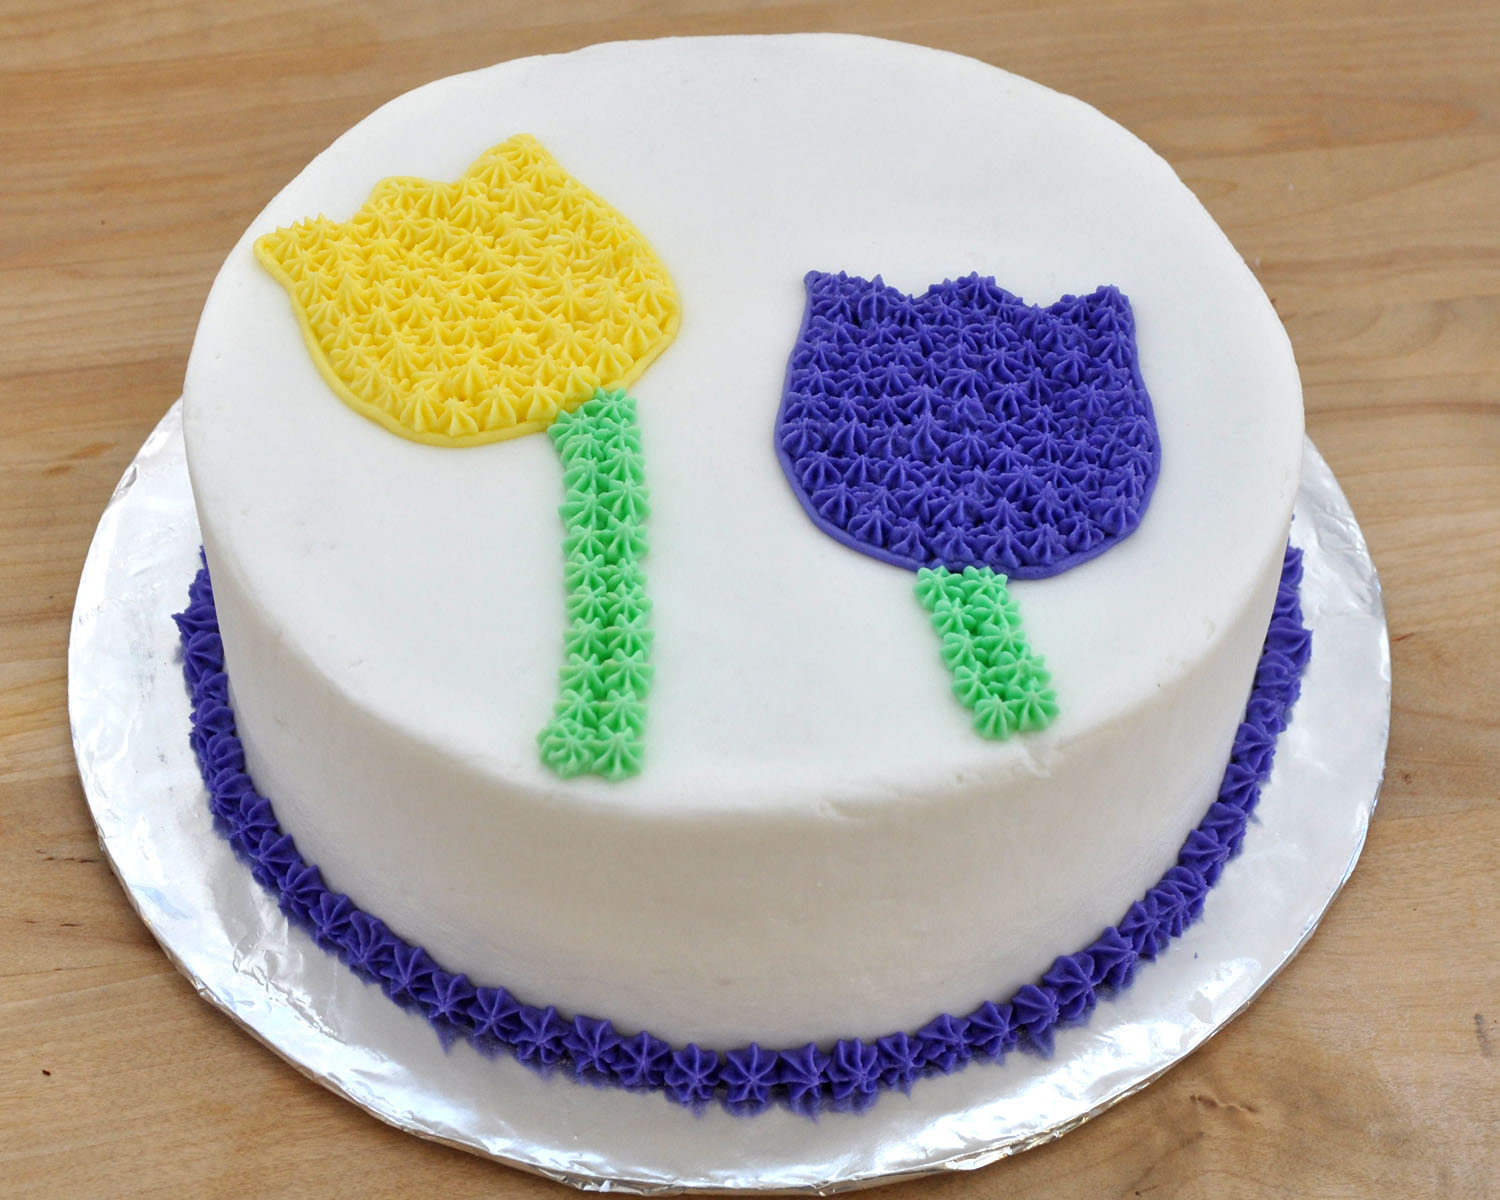 Simple Cake Decoration www.imgkid.com - The Image Kid ...